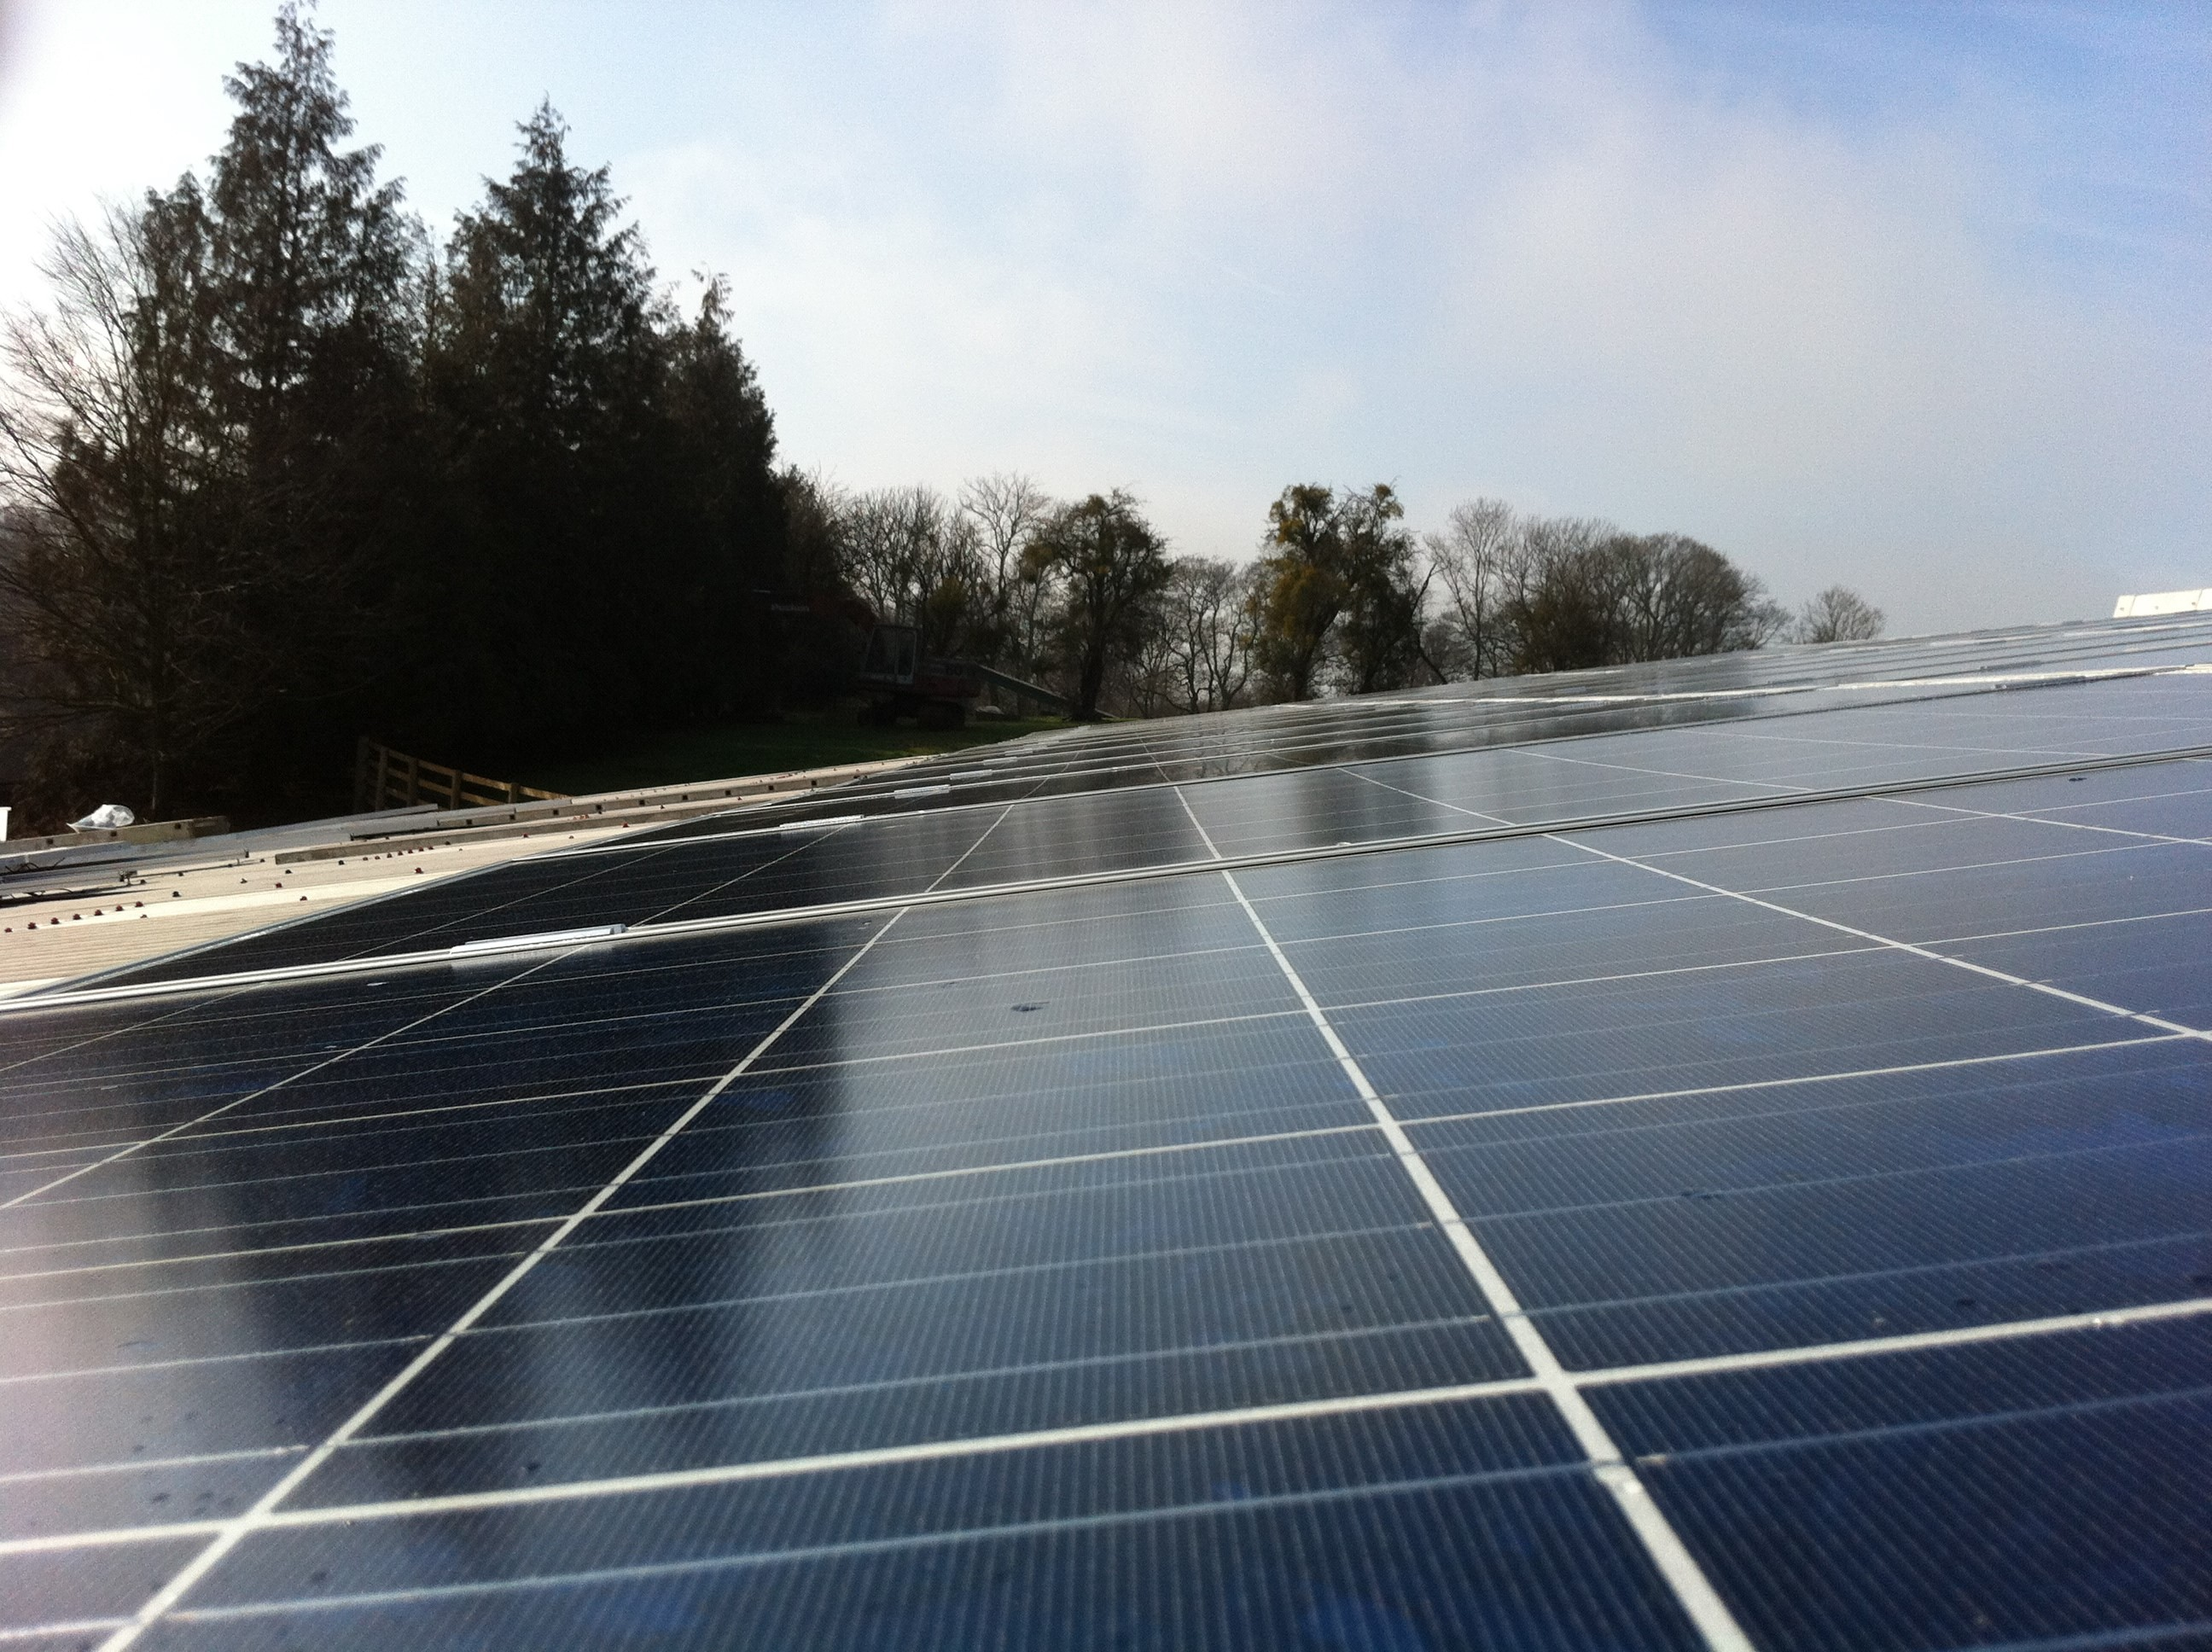 A Guide To Pv Solar Energy Therefore The Photovoltaic Panels Of Powered System Use In Some Cases Yes It Is Already Profitable Without Subsidies Particularly Where All Electricity Produced Will Be Used On Site